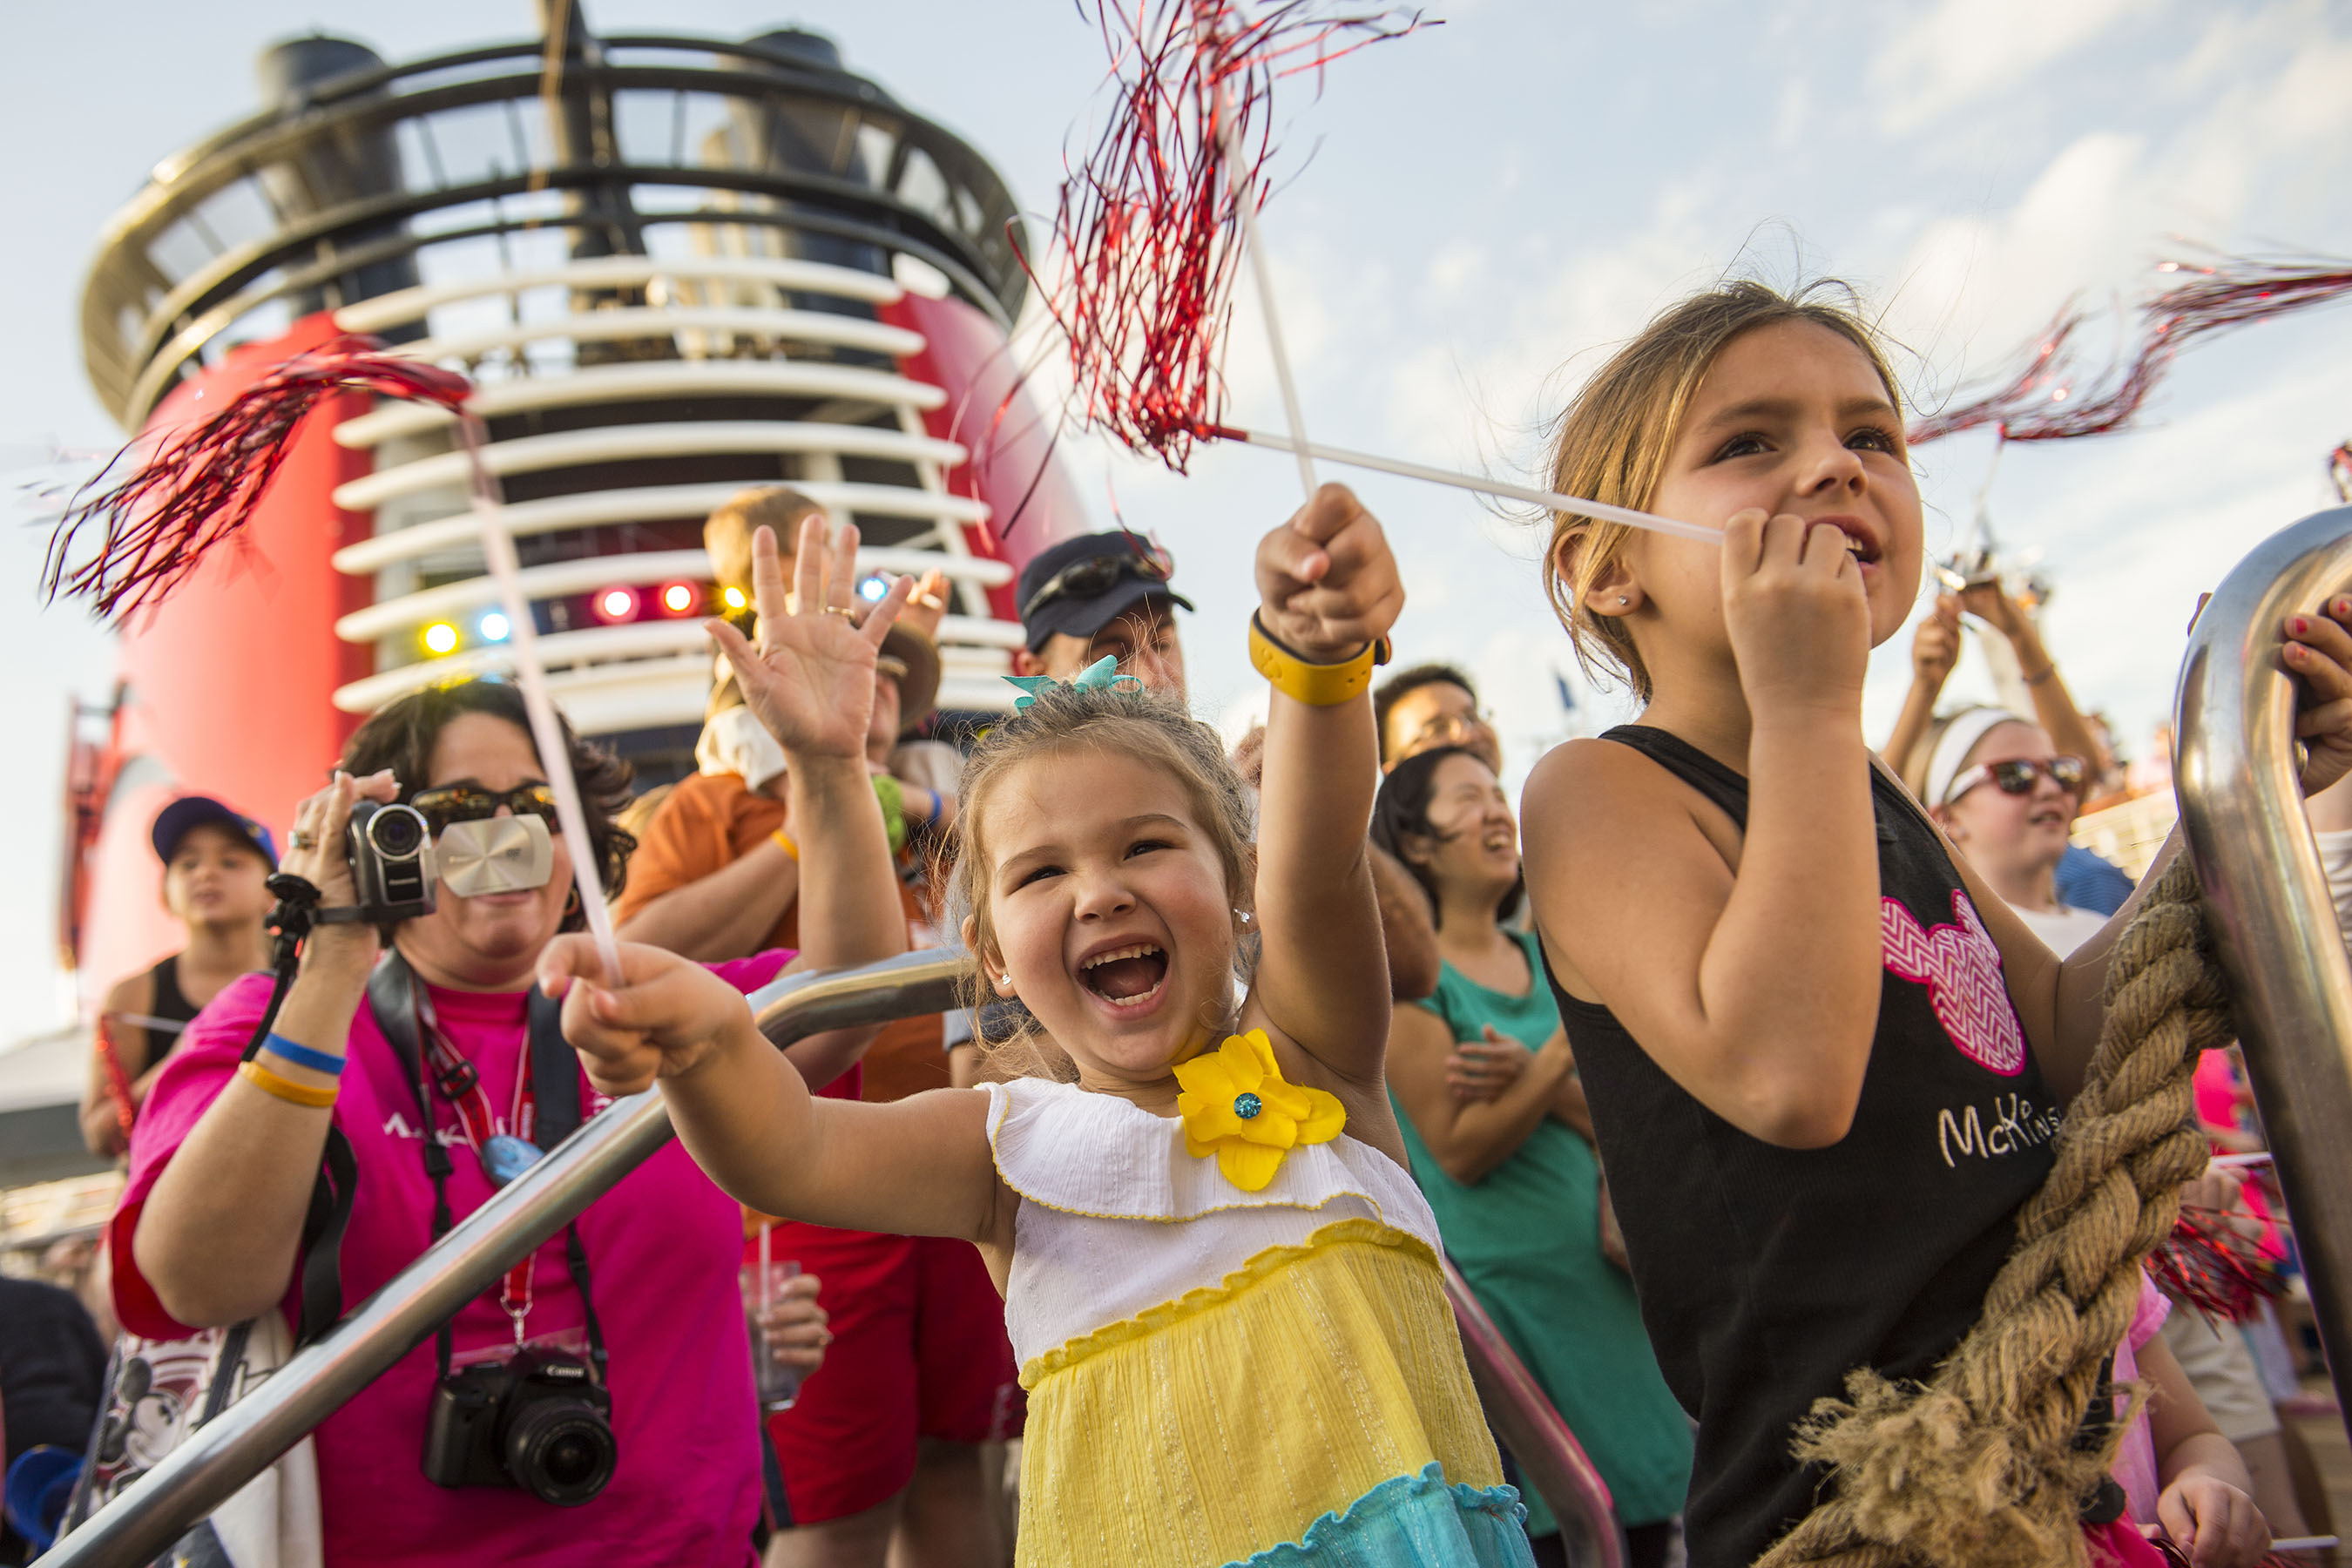 When Can I Book My Summer 2019 Disney Cruise?